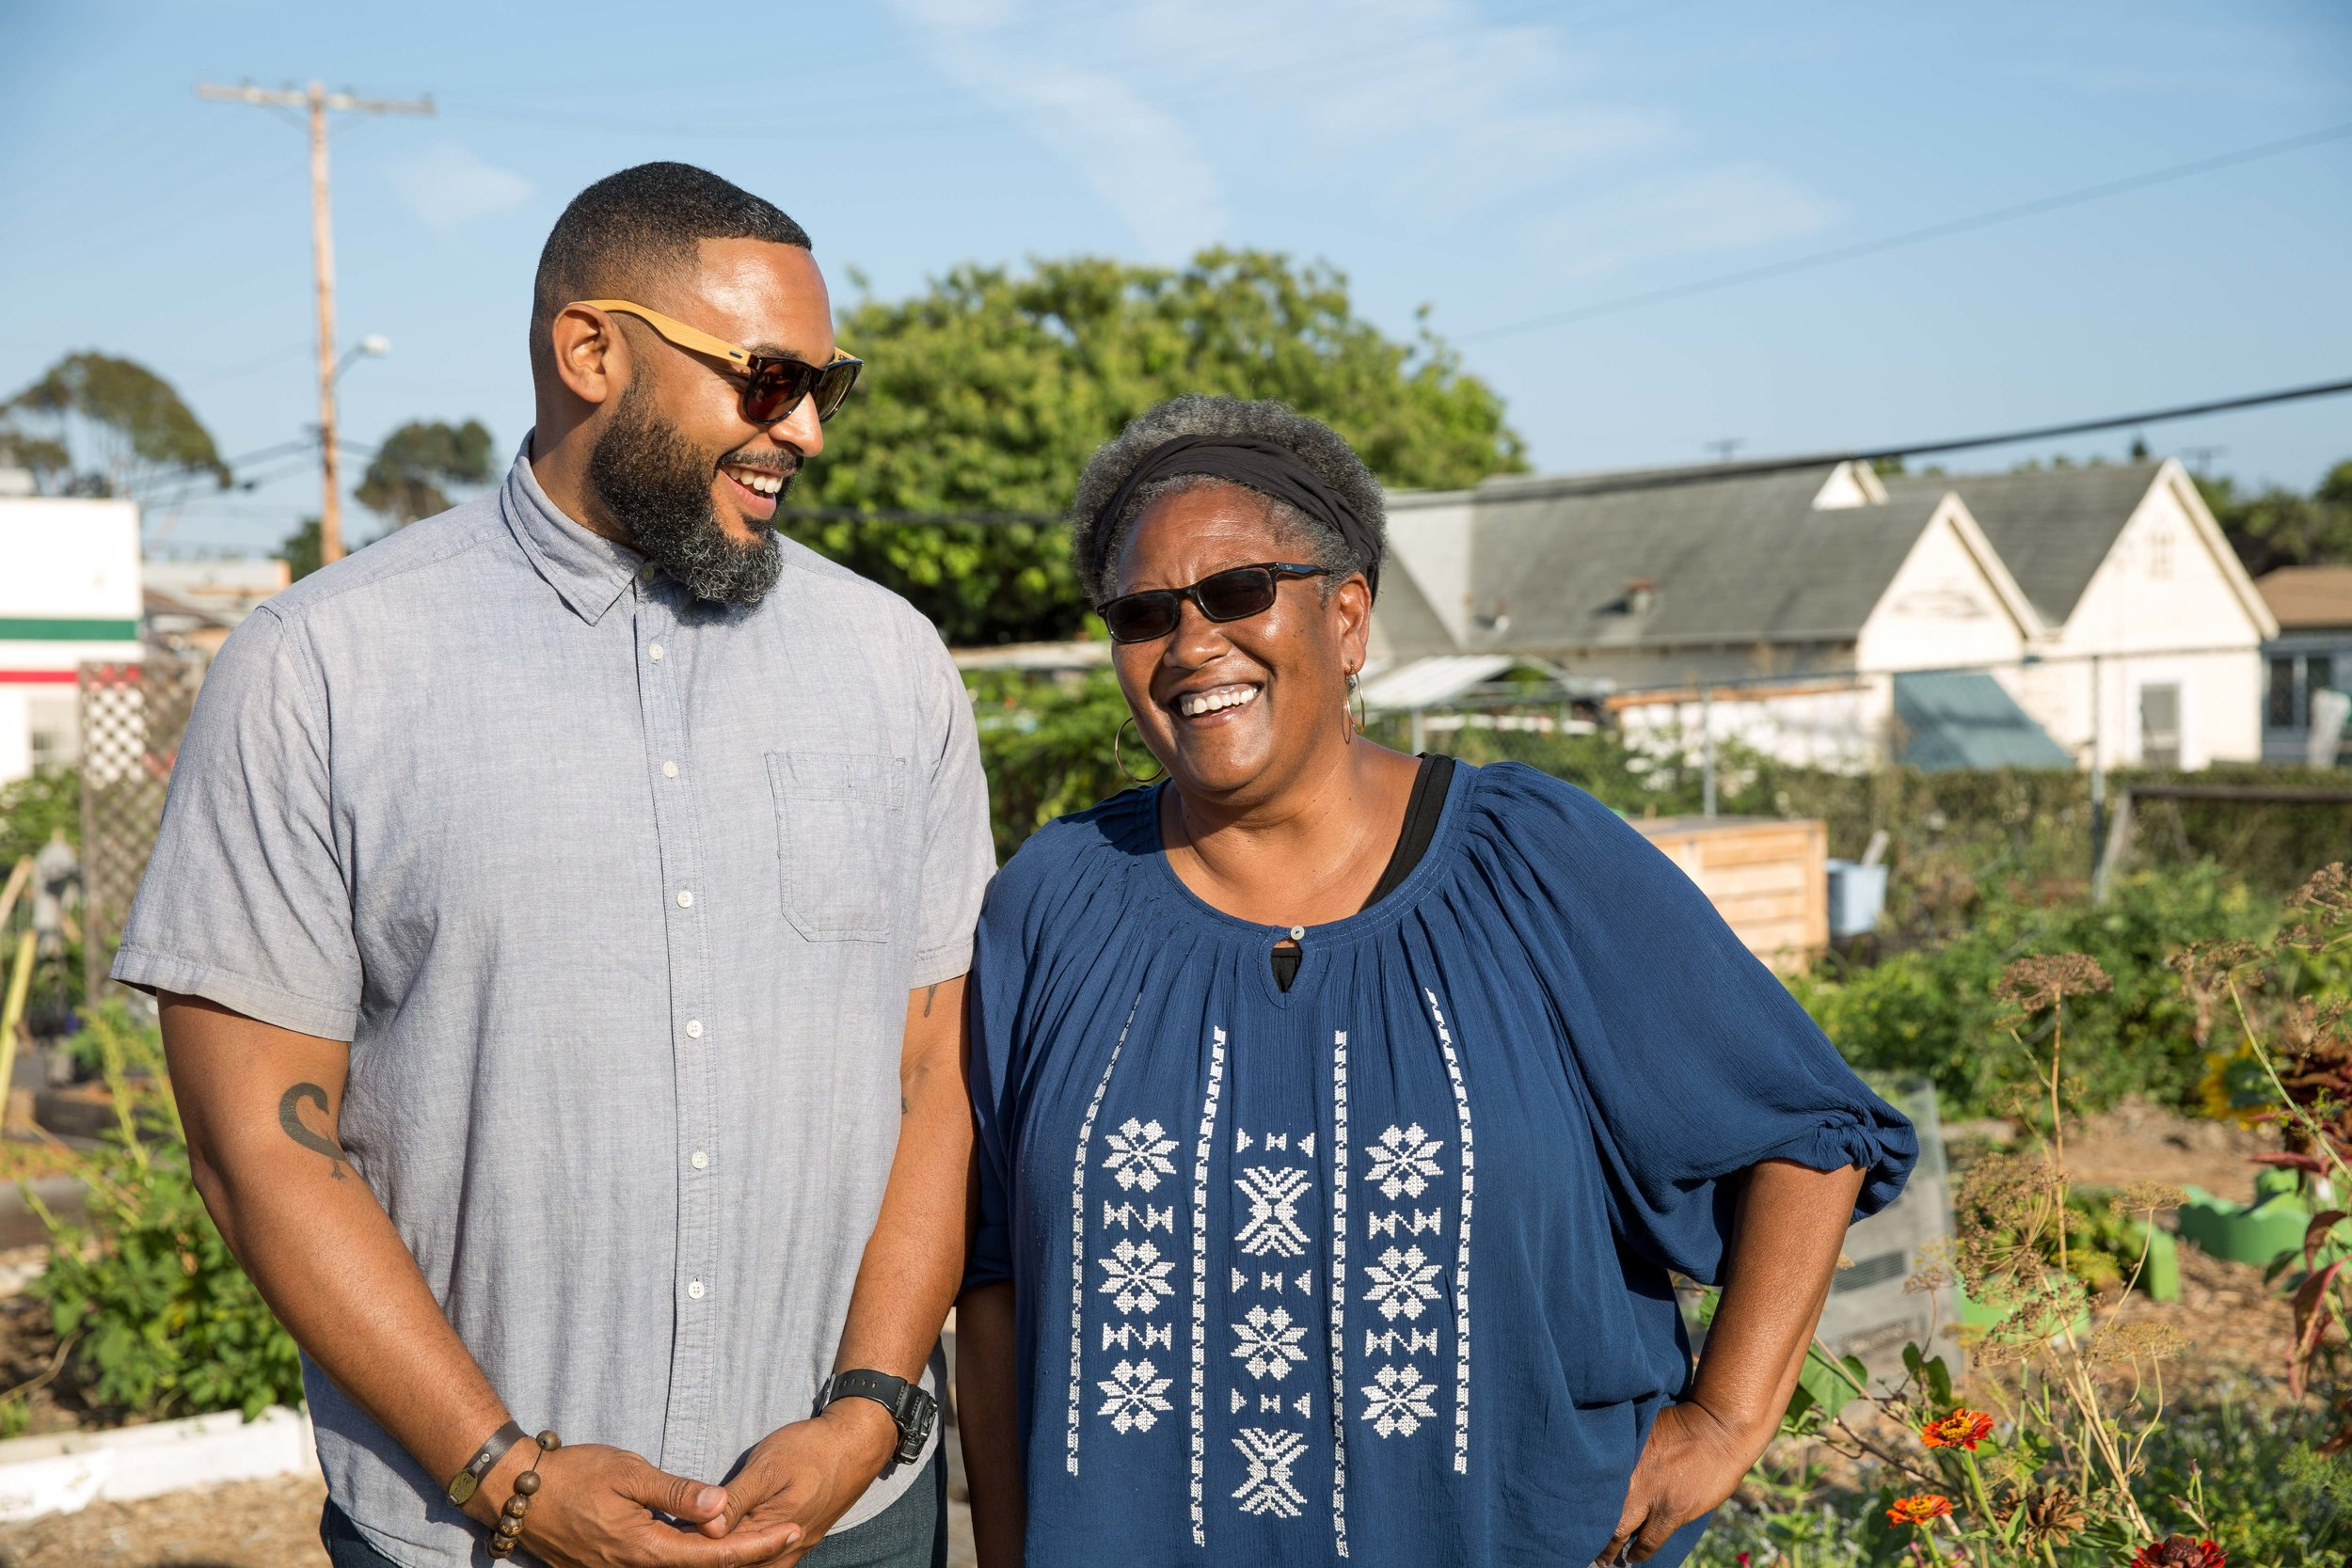 Diane Moss and Kamaal Martin of Project New Village (Photo Credit: Colin Leibold)